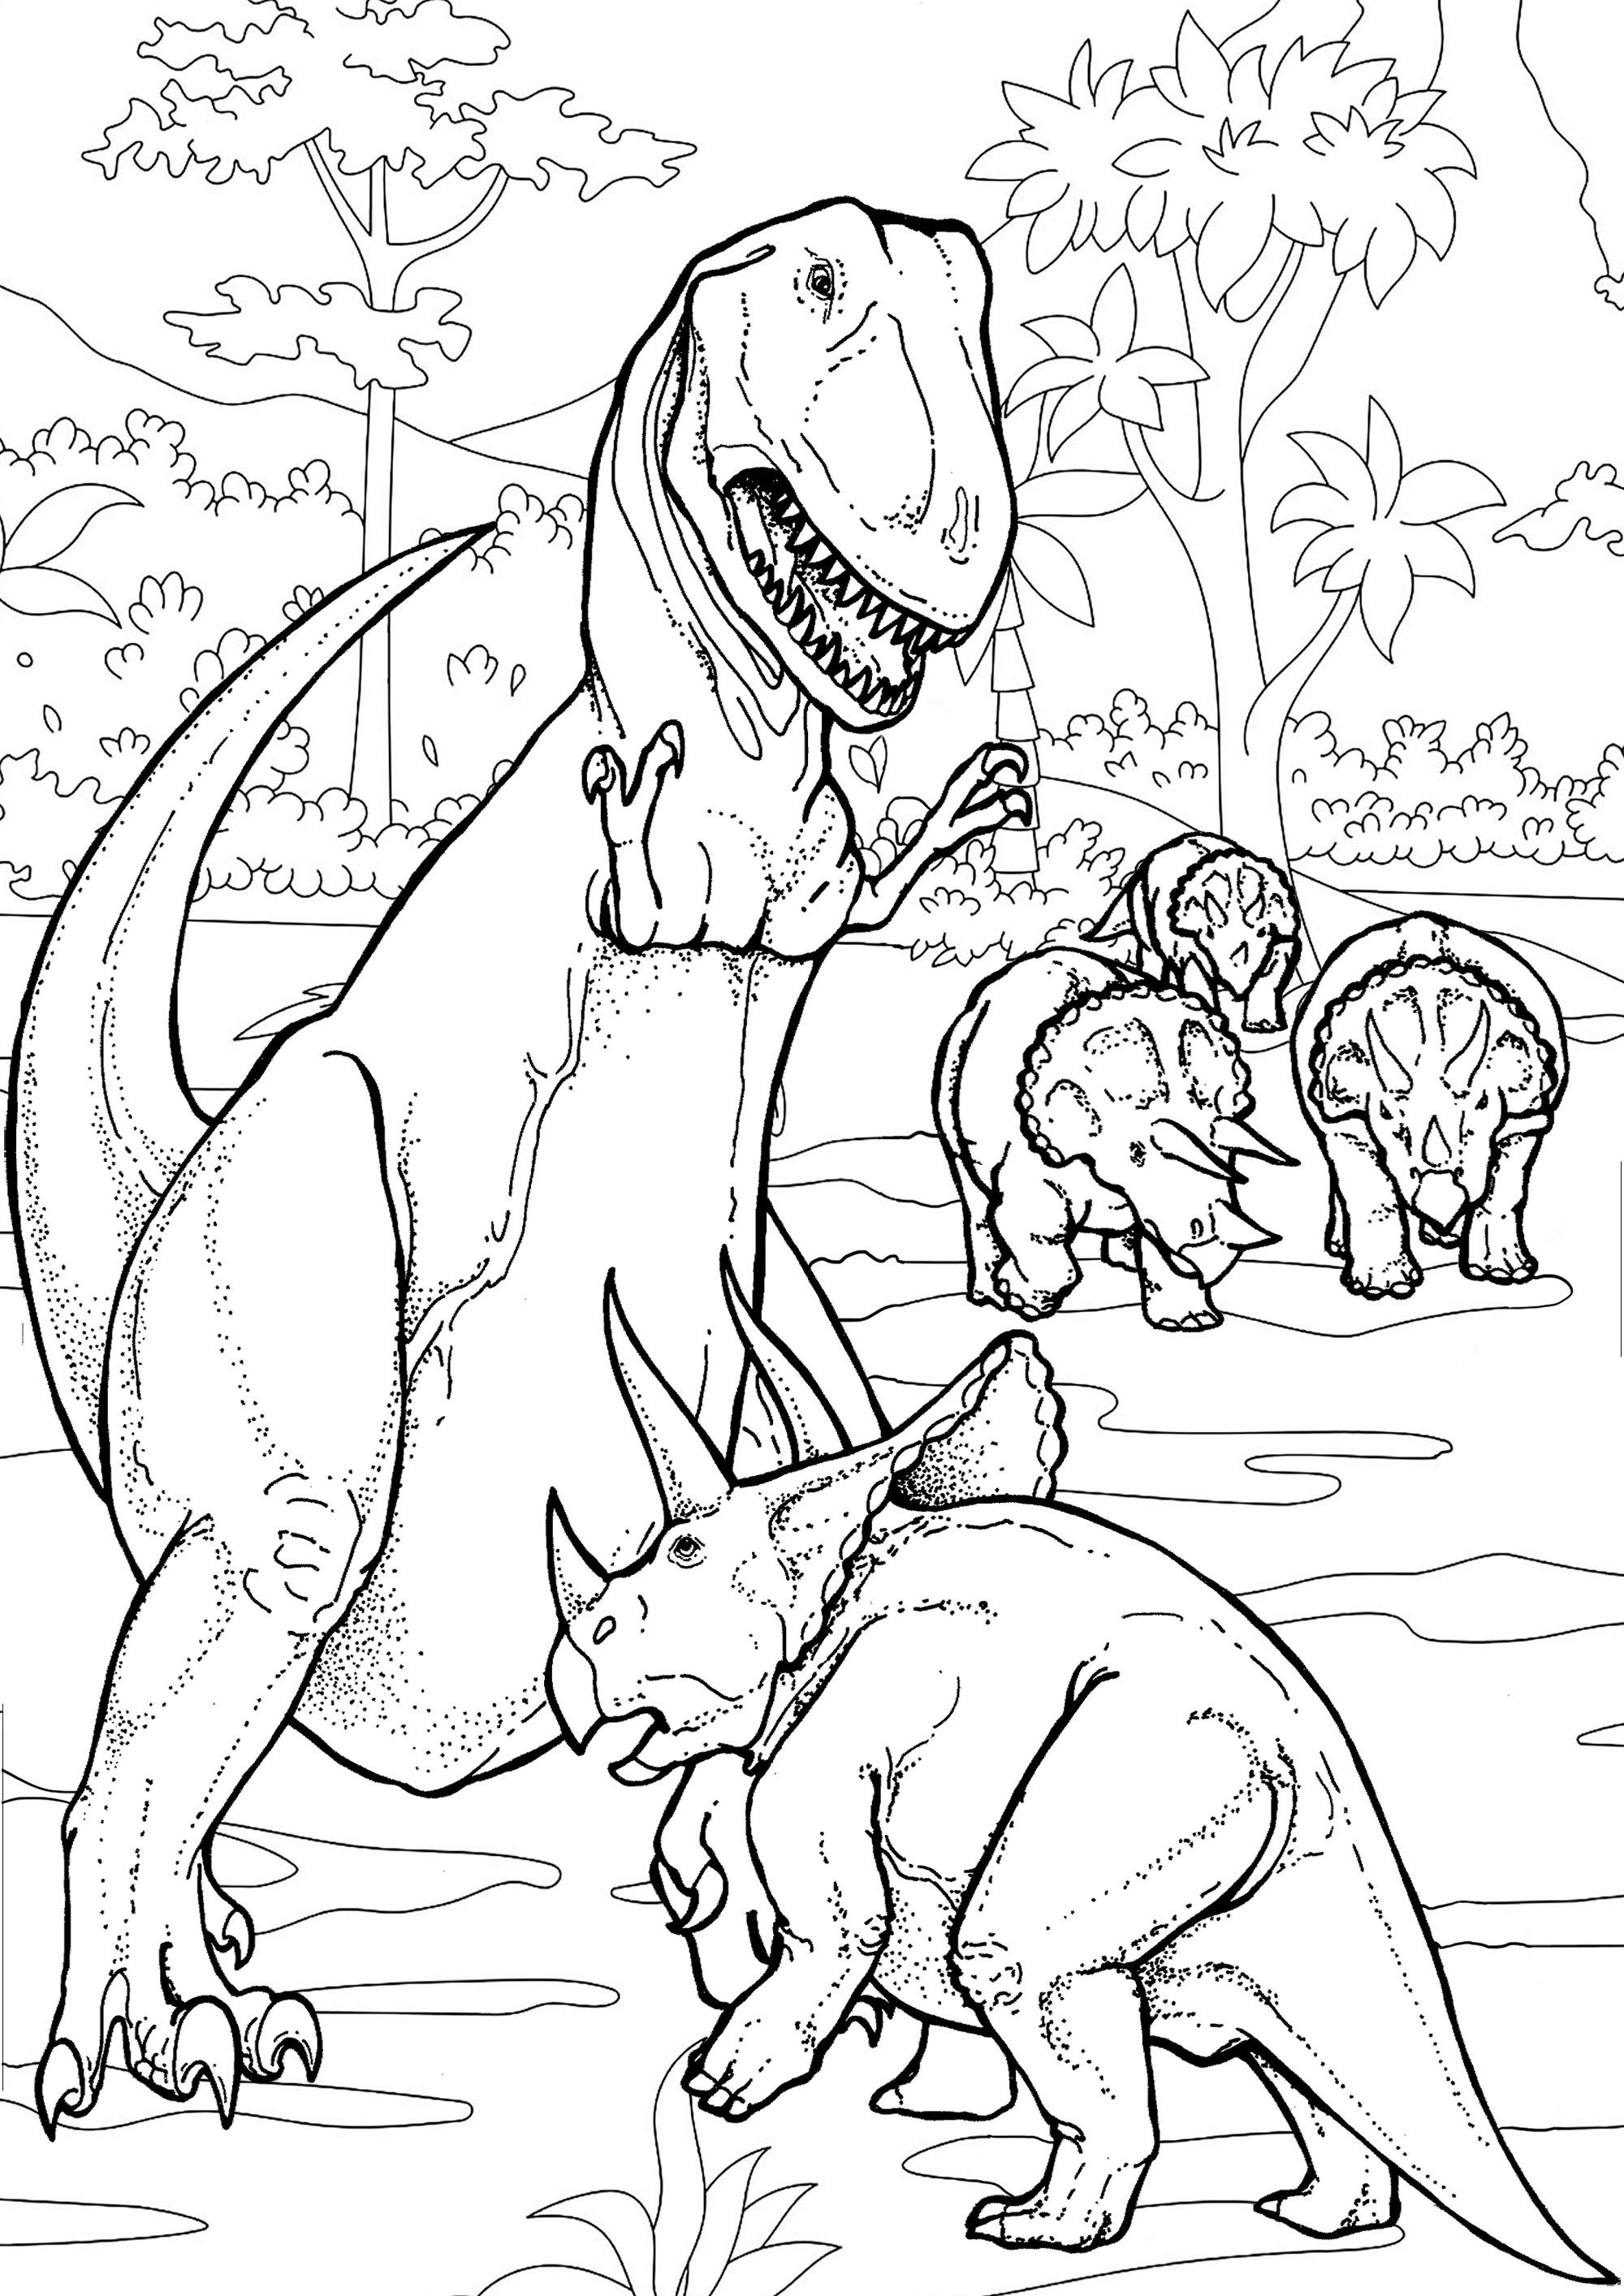 30 Dinosaur Coloring Pages Riscos Molde